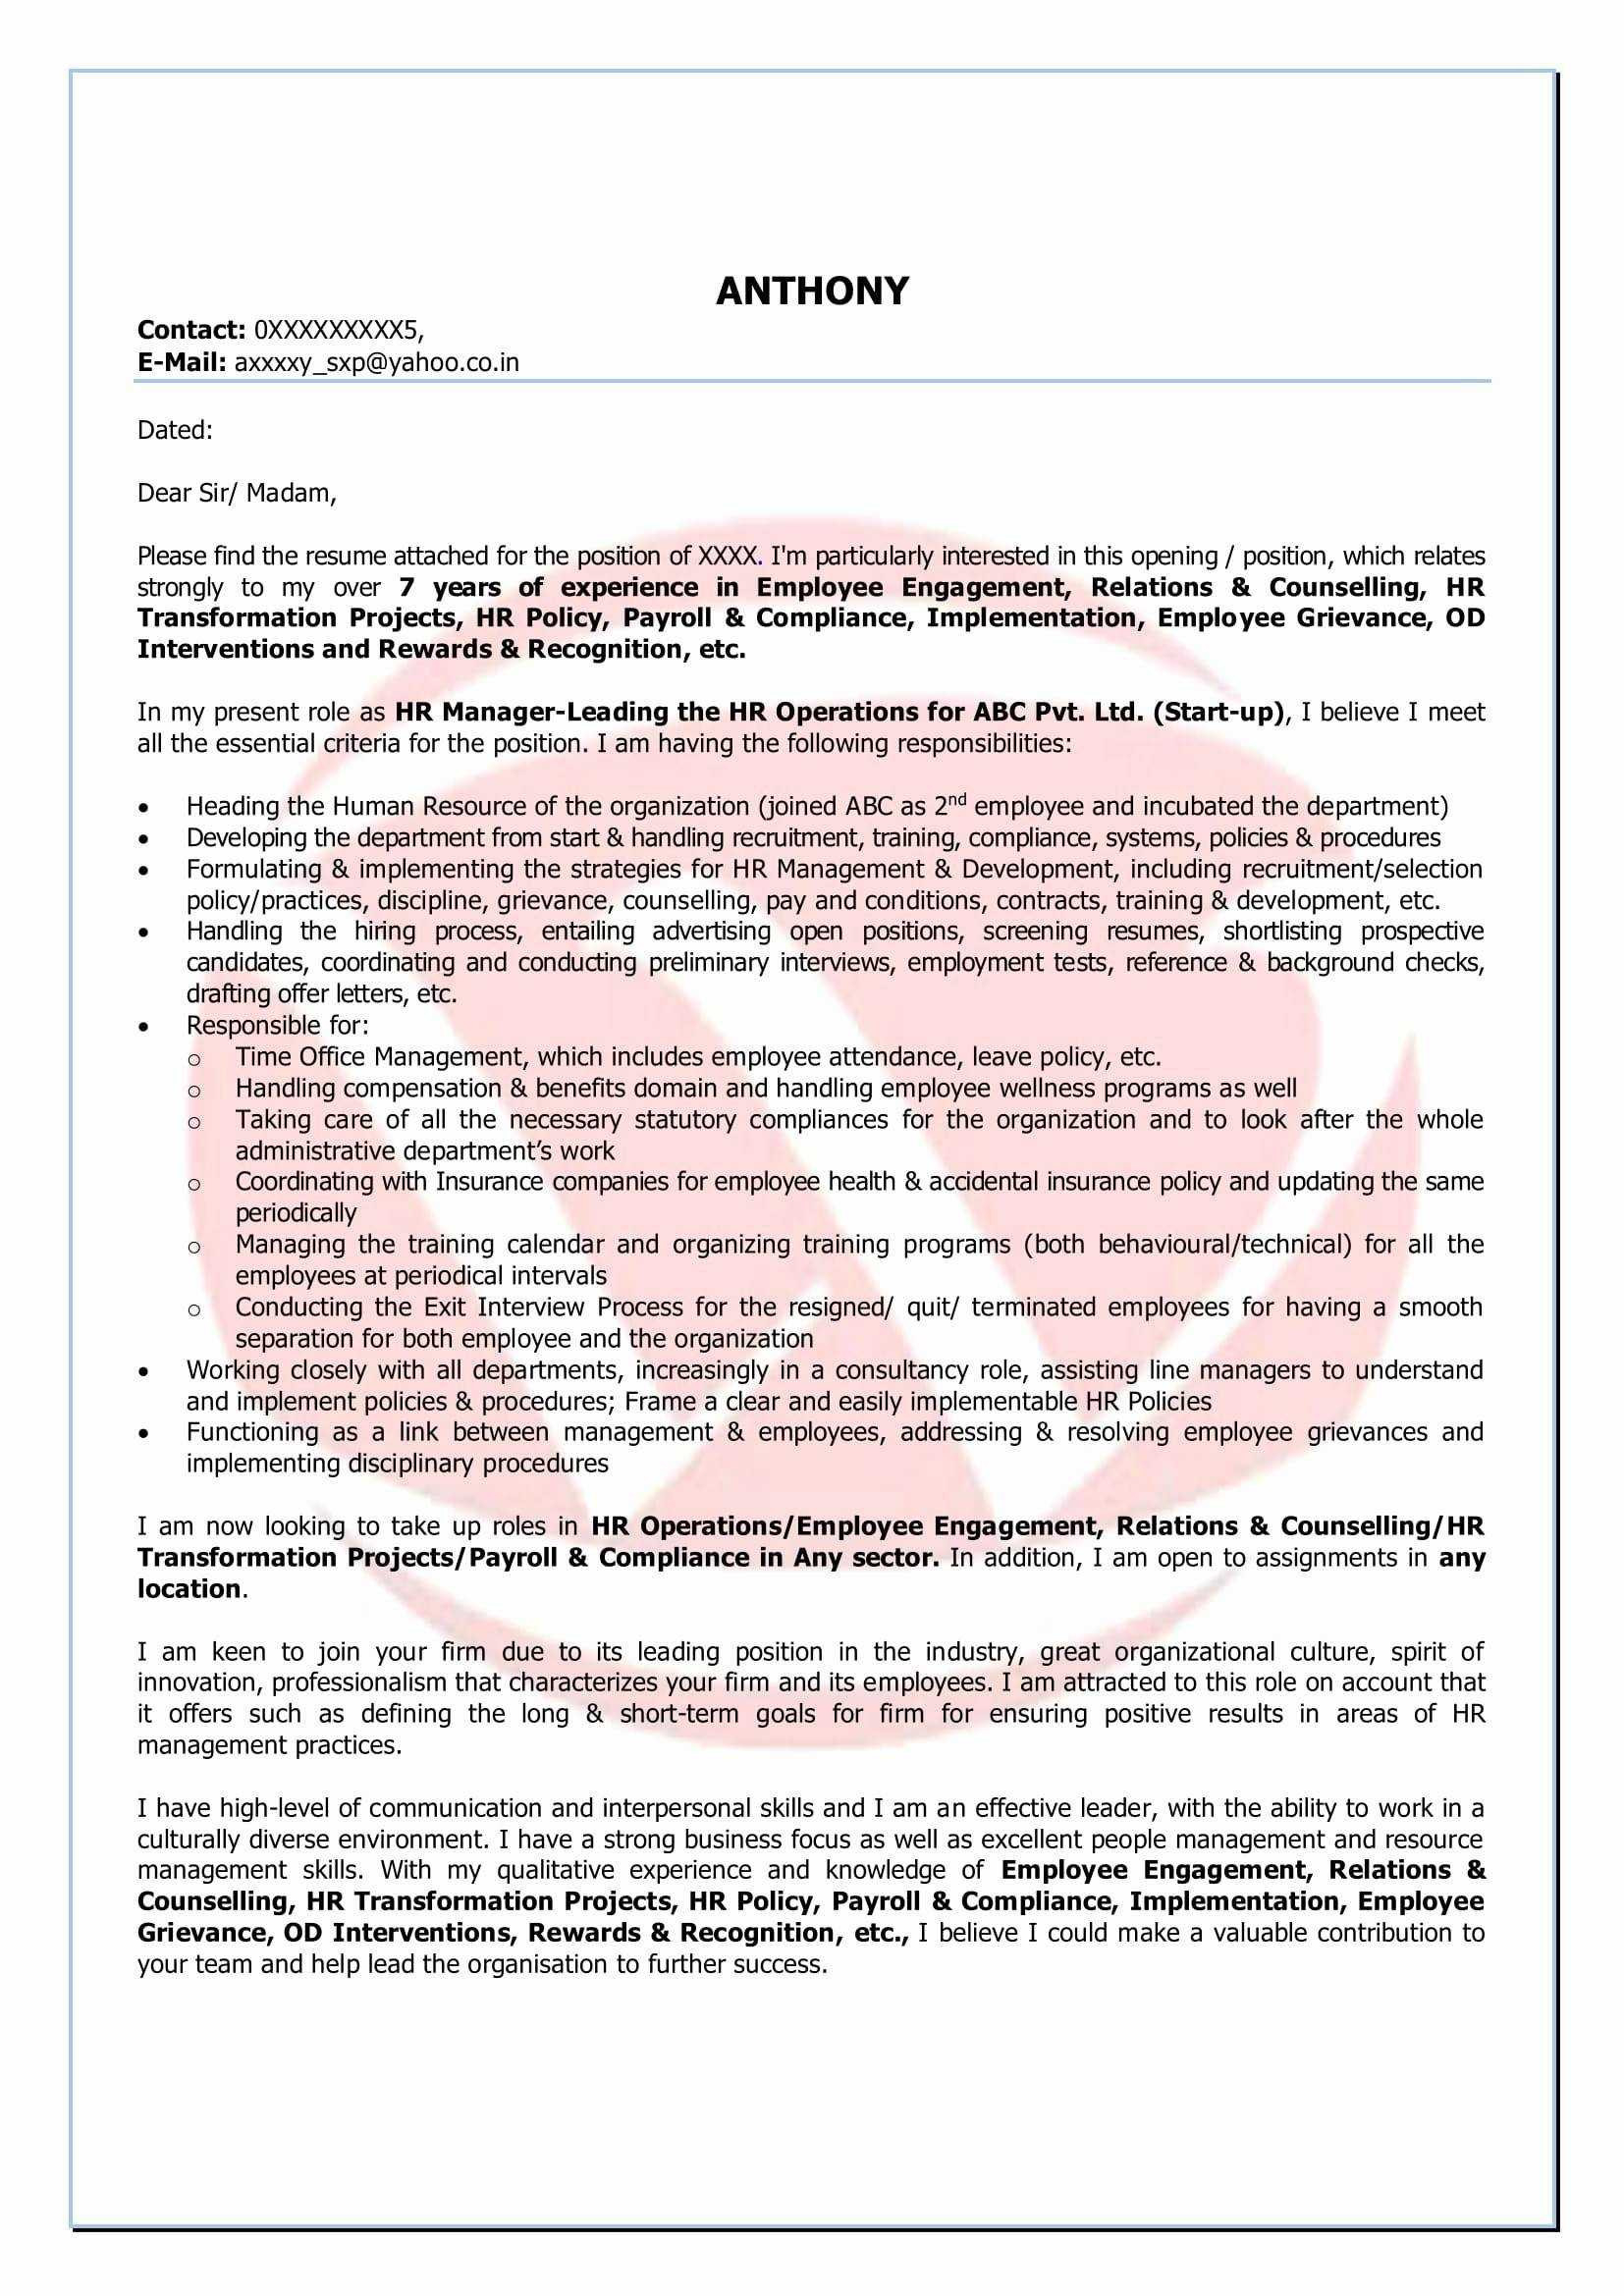 Resume Opening Statements Examples - Cover Letter Opening Statement Fresh Privacy Policy Statement with